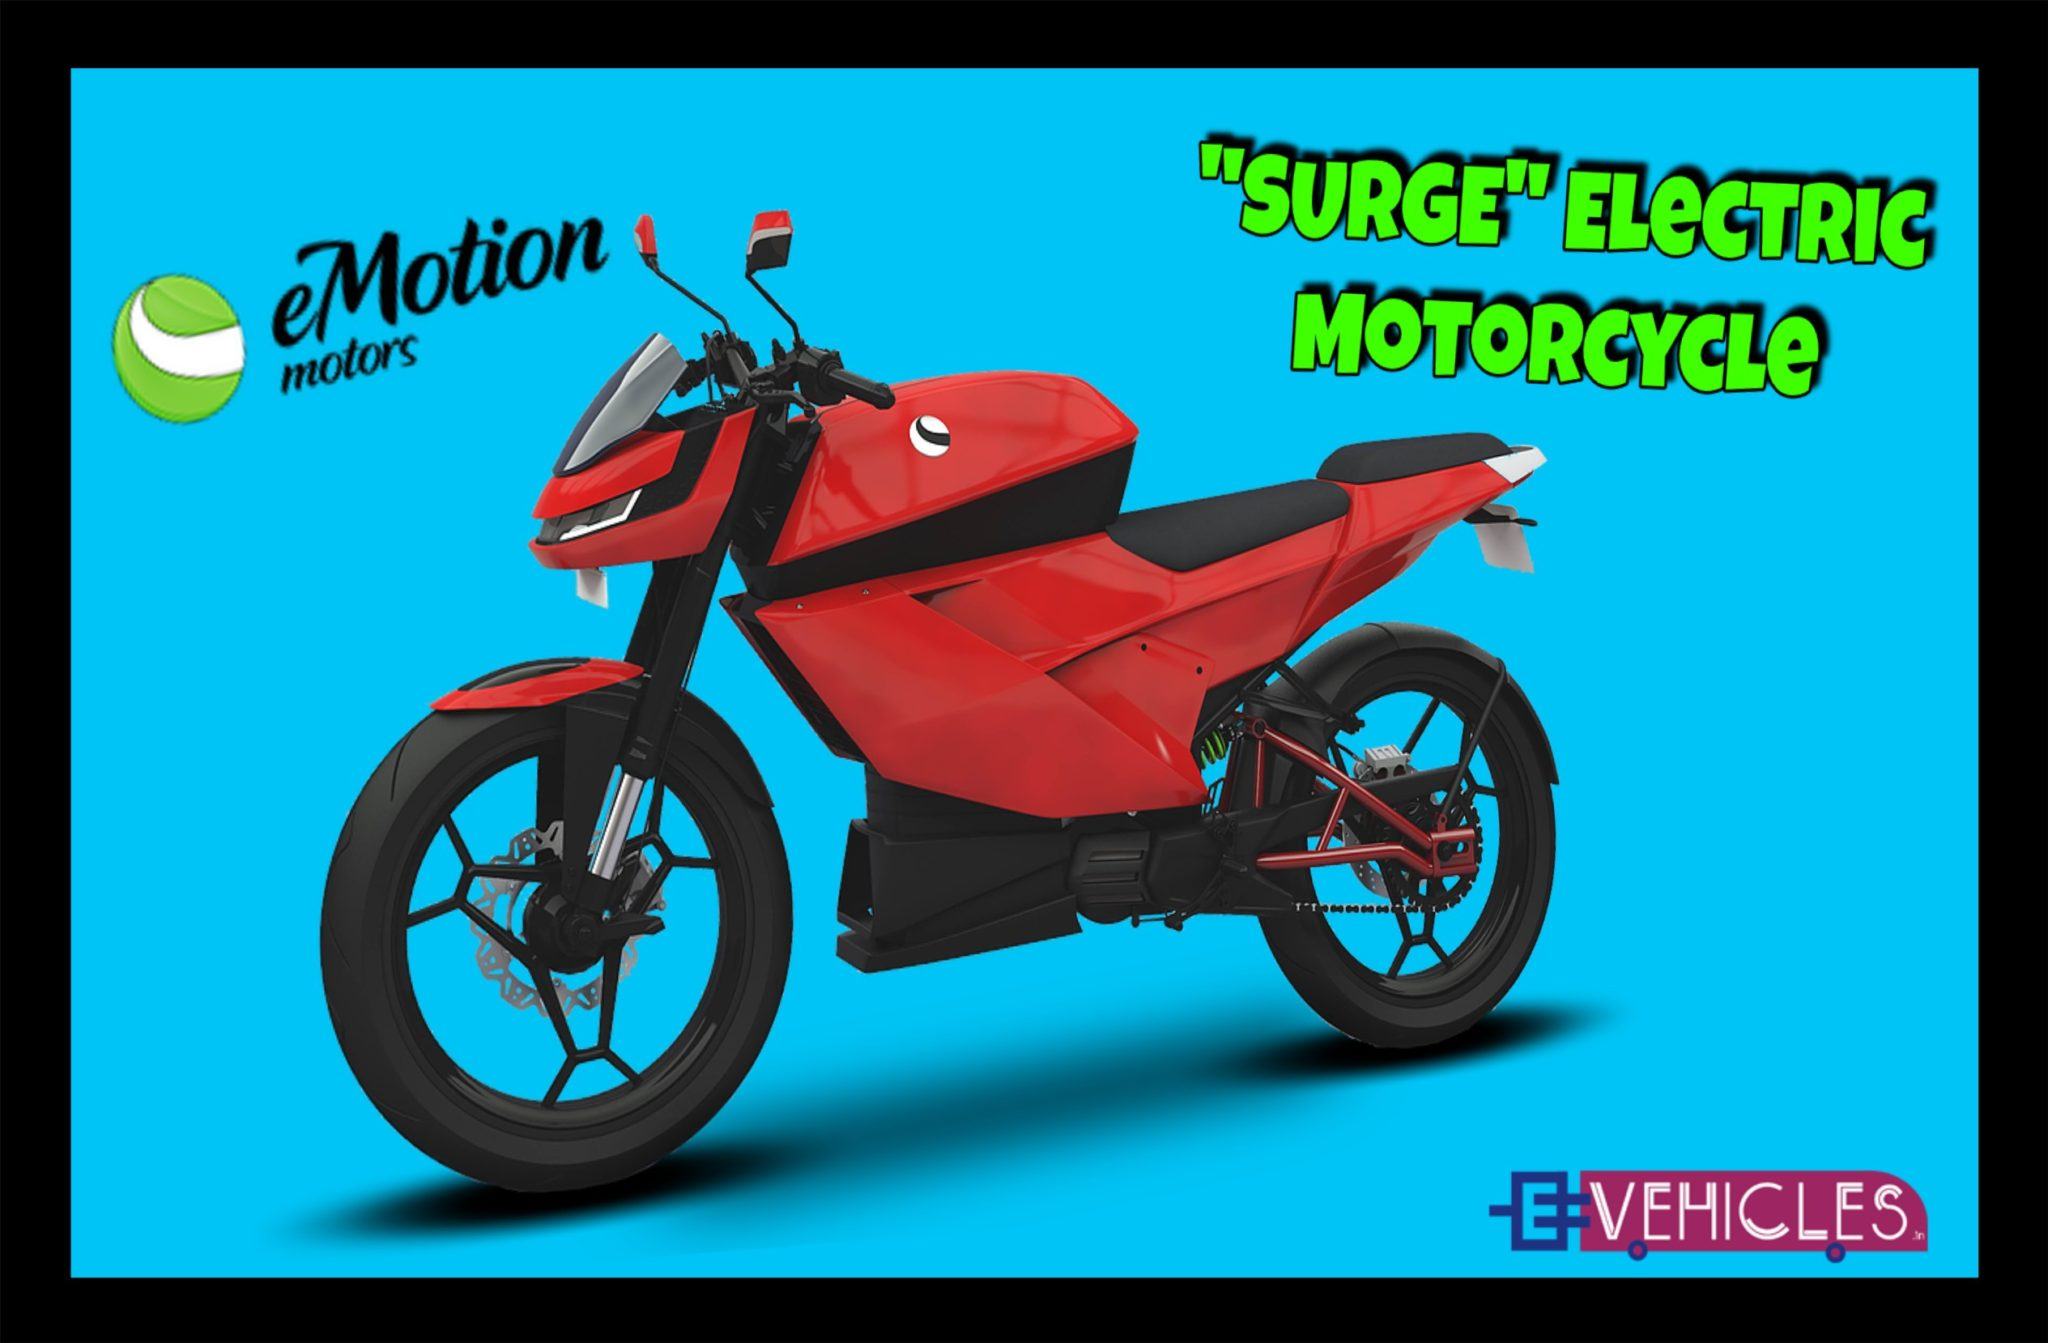 SURGE Electric Motorcycle From Emotion Motors